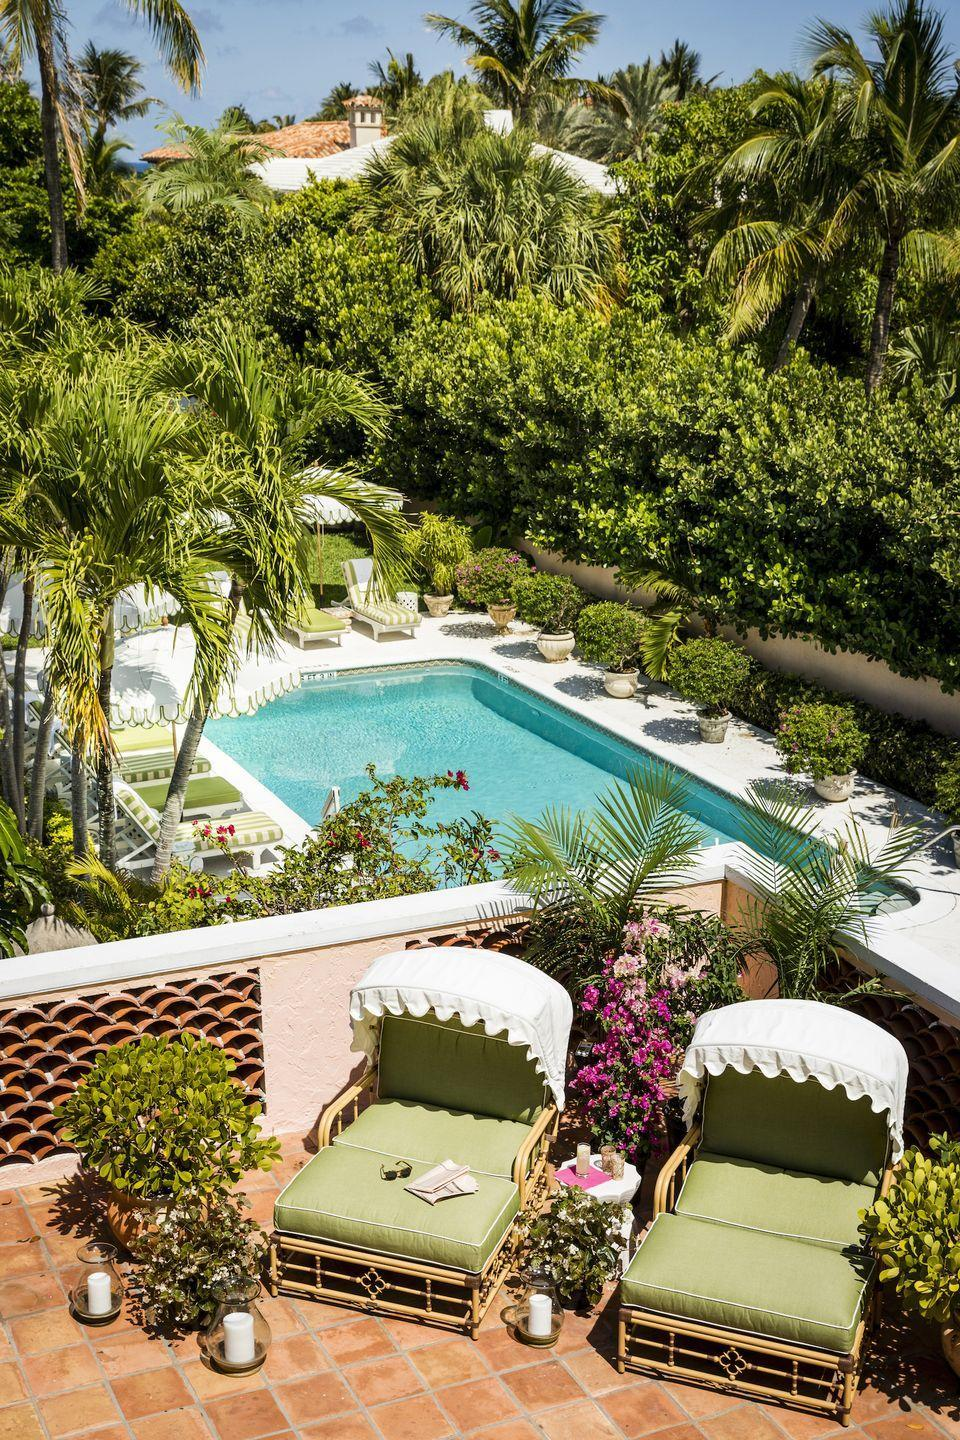 "<p>February is a fabulous time to escape to the glamorous city of Palm Beach and soak up some Florida sun. One of our favorite ways to do so is with a trip to <a href=""https://thecolonypalmbeach.com/"" rel=""nofollow noopener"" target=""_blank"" data-ylk=""slk:The Colony Hotel"" class=""link rapid-noclick-resp"">The Colony Hotel</a>. Not only is it smartly decorated for the occasion (the hotel is pink!), it offers fun amenities for you and your partner, and is seated in a shopper's paradise just off the iconic Worth Avenue.</p><p>Romantic celebrations at The Colony include a daily poolside breakfast for two, Champagne and chocolate-covered strawberries upon arrival, and the hotel's Beach Buggy team will even create an adorable beach set-up for lovebirds—complete with a pink cooler filled with food and beverage to enjoy a romantic picnic. </p>"